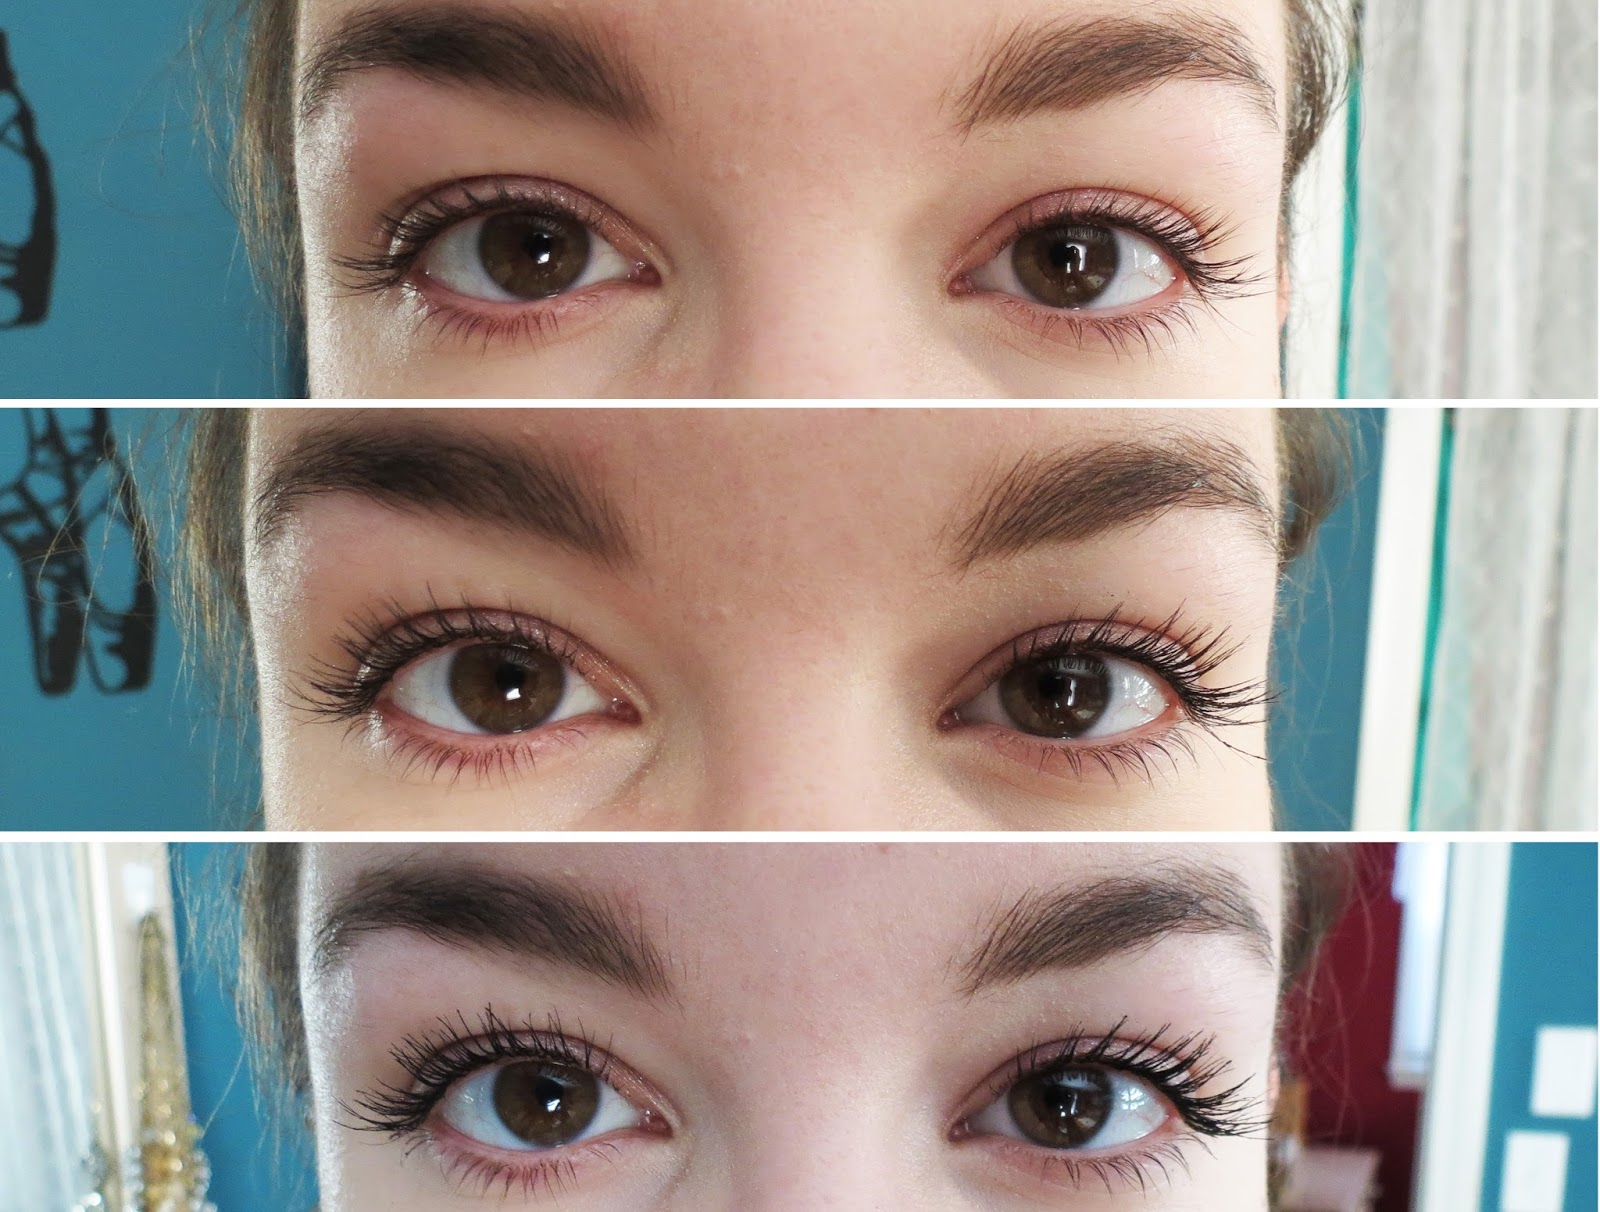 Top: No mascara, eyelashes curled. Middle: One coat of L'Oreal Miss Manga. Bottom: One coat Miss Manga + One coat Maybelline Lash Sensational.